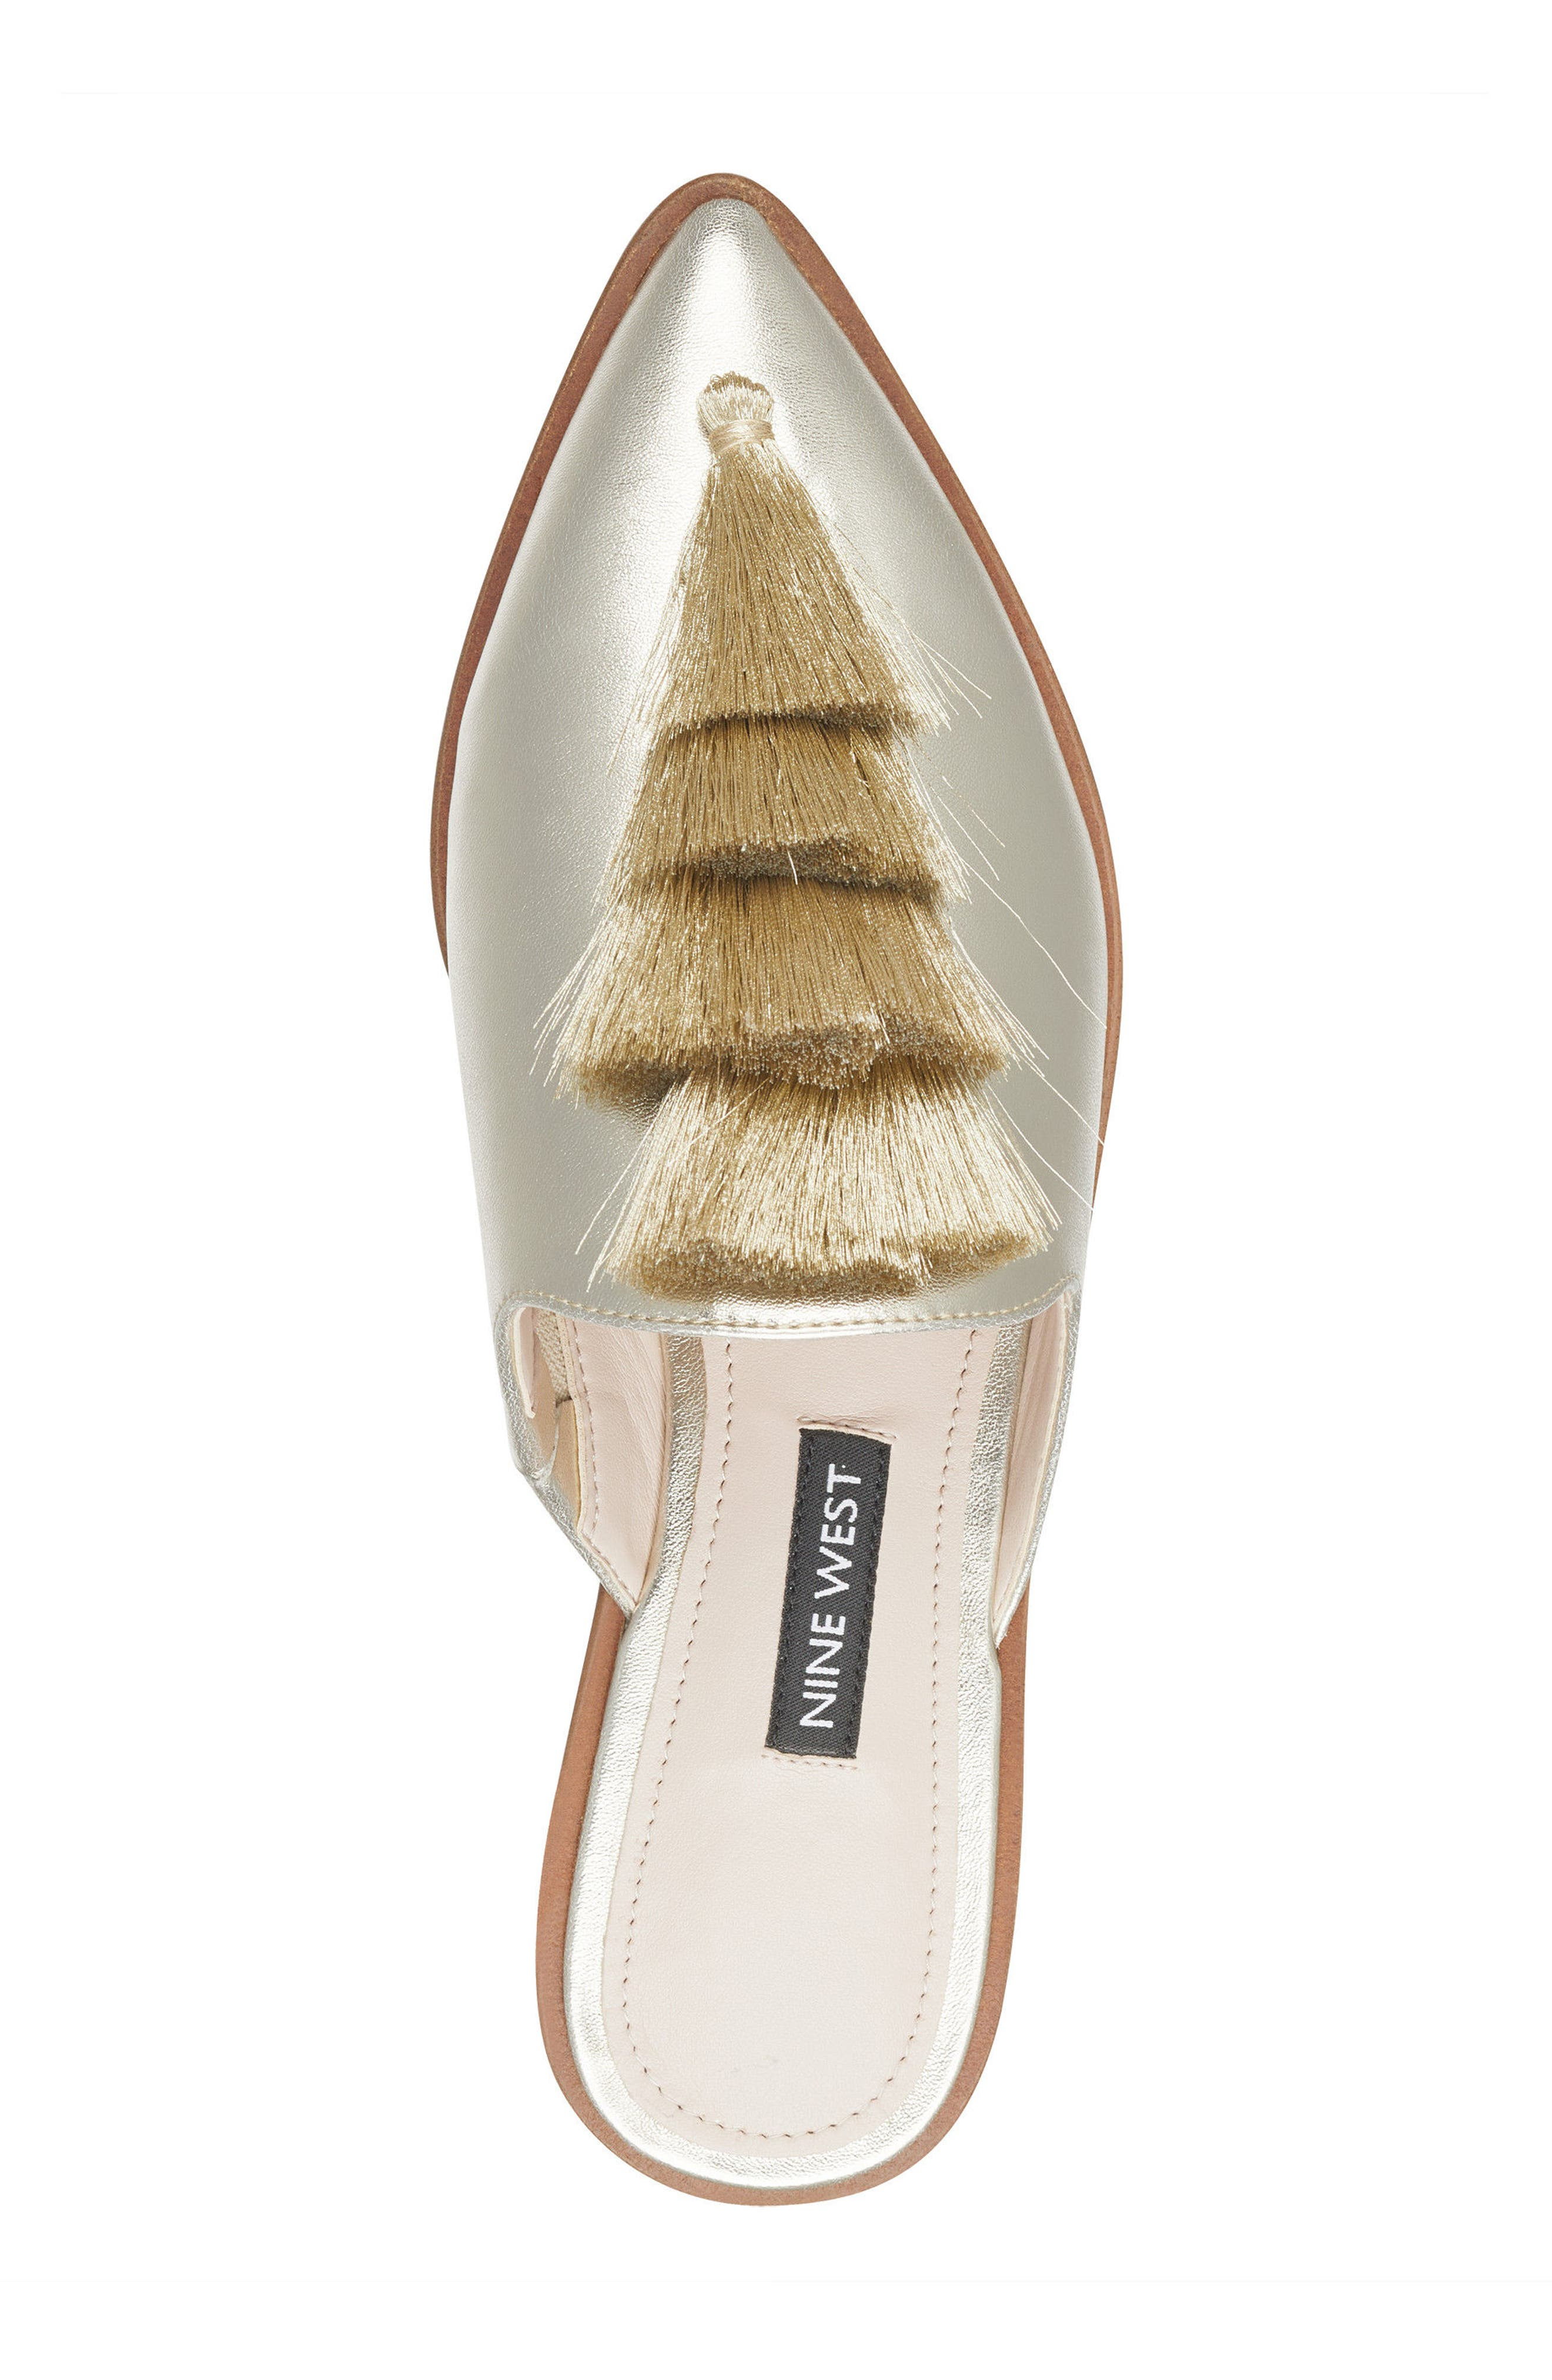 Ollial Fringed Loafer Mule,                             Alternate thumbnail 5, color,                             Light Gold Leather